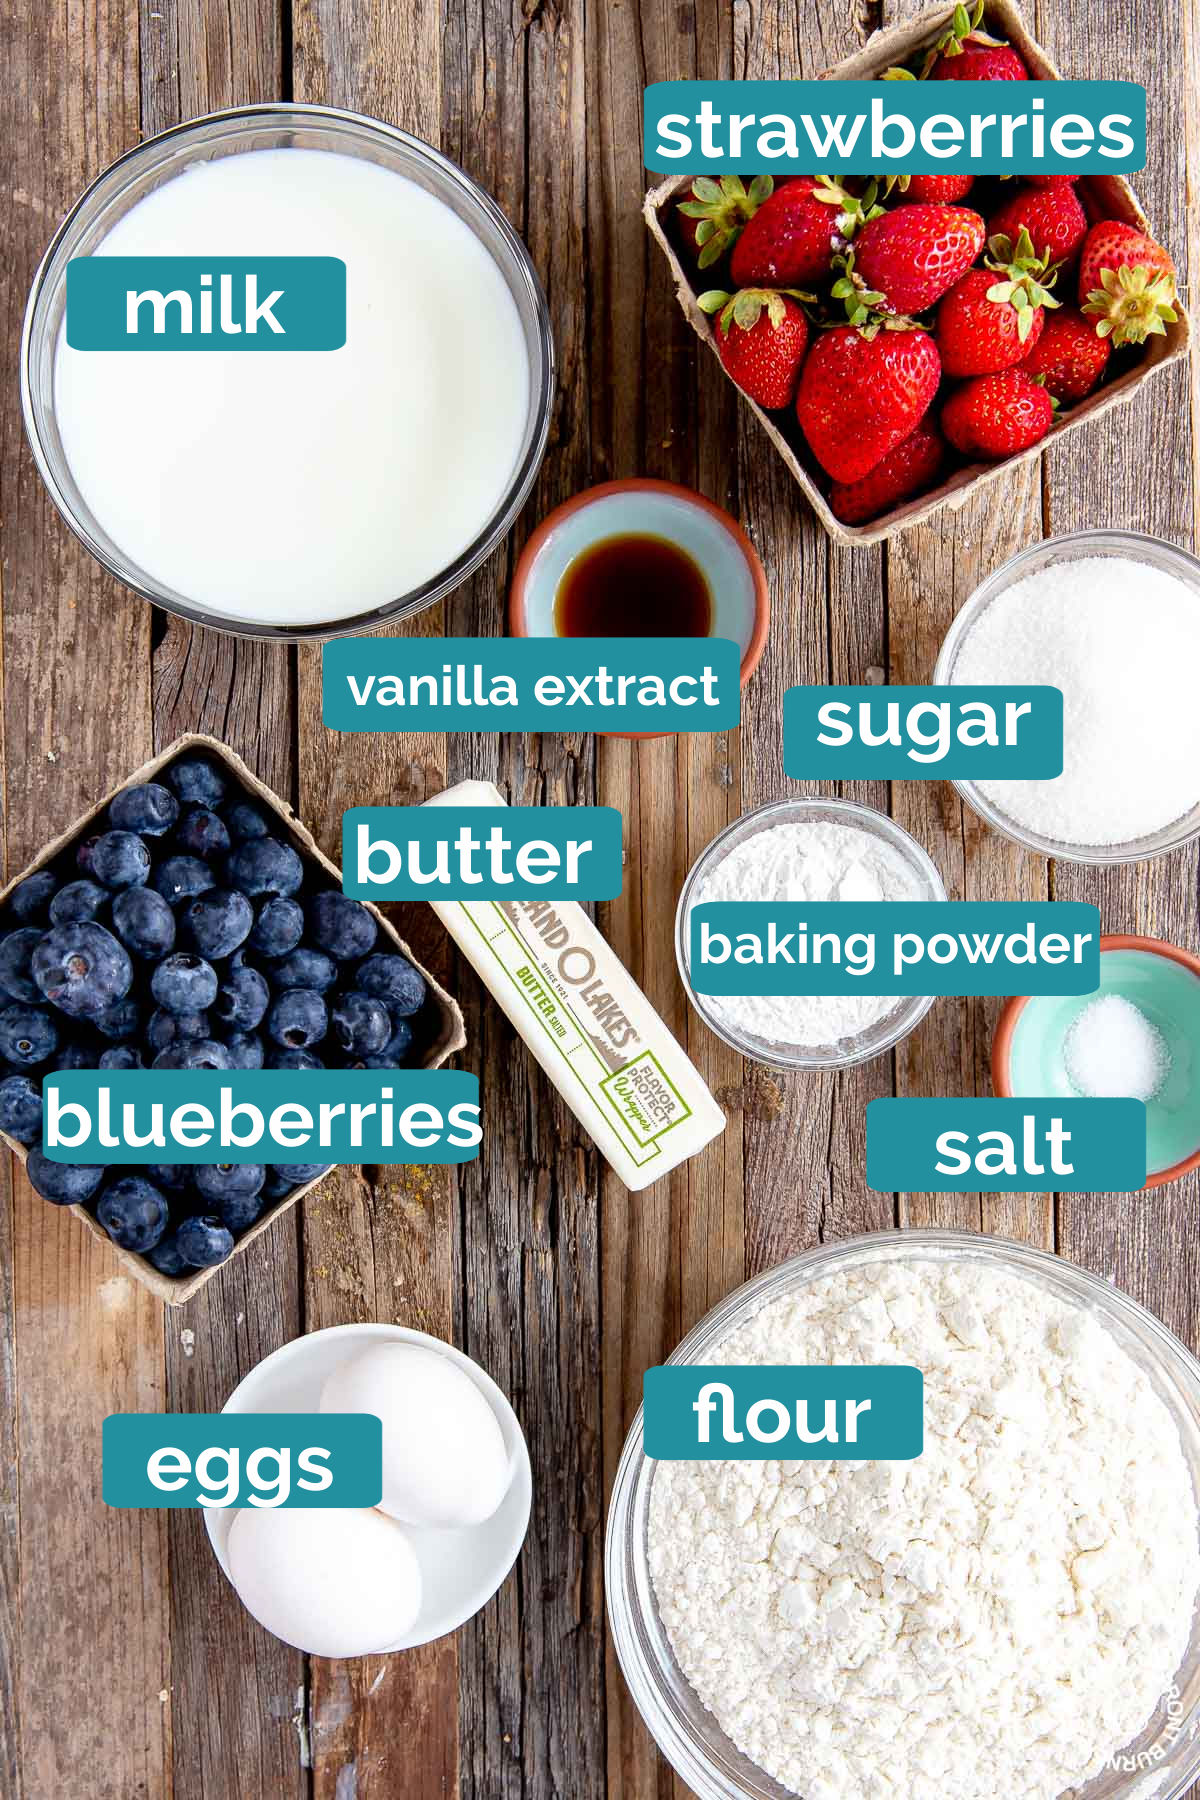 milk, strawberries, vanilla extract, blueberries, sugar, baking powder, salt, eggs and flour on a board in bowls